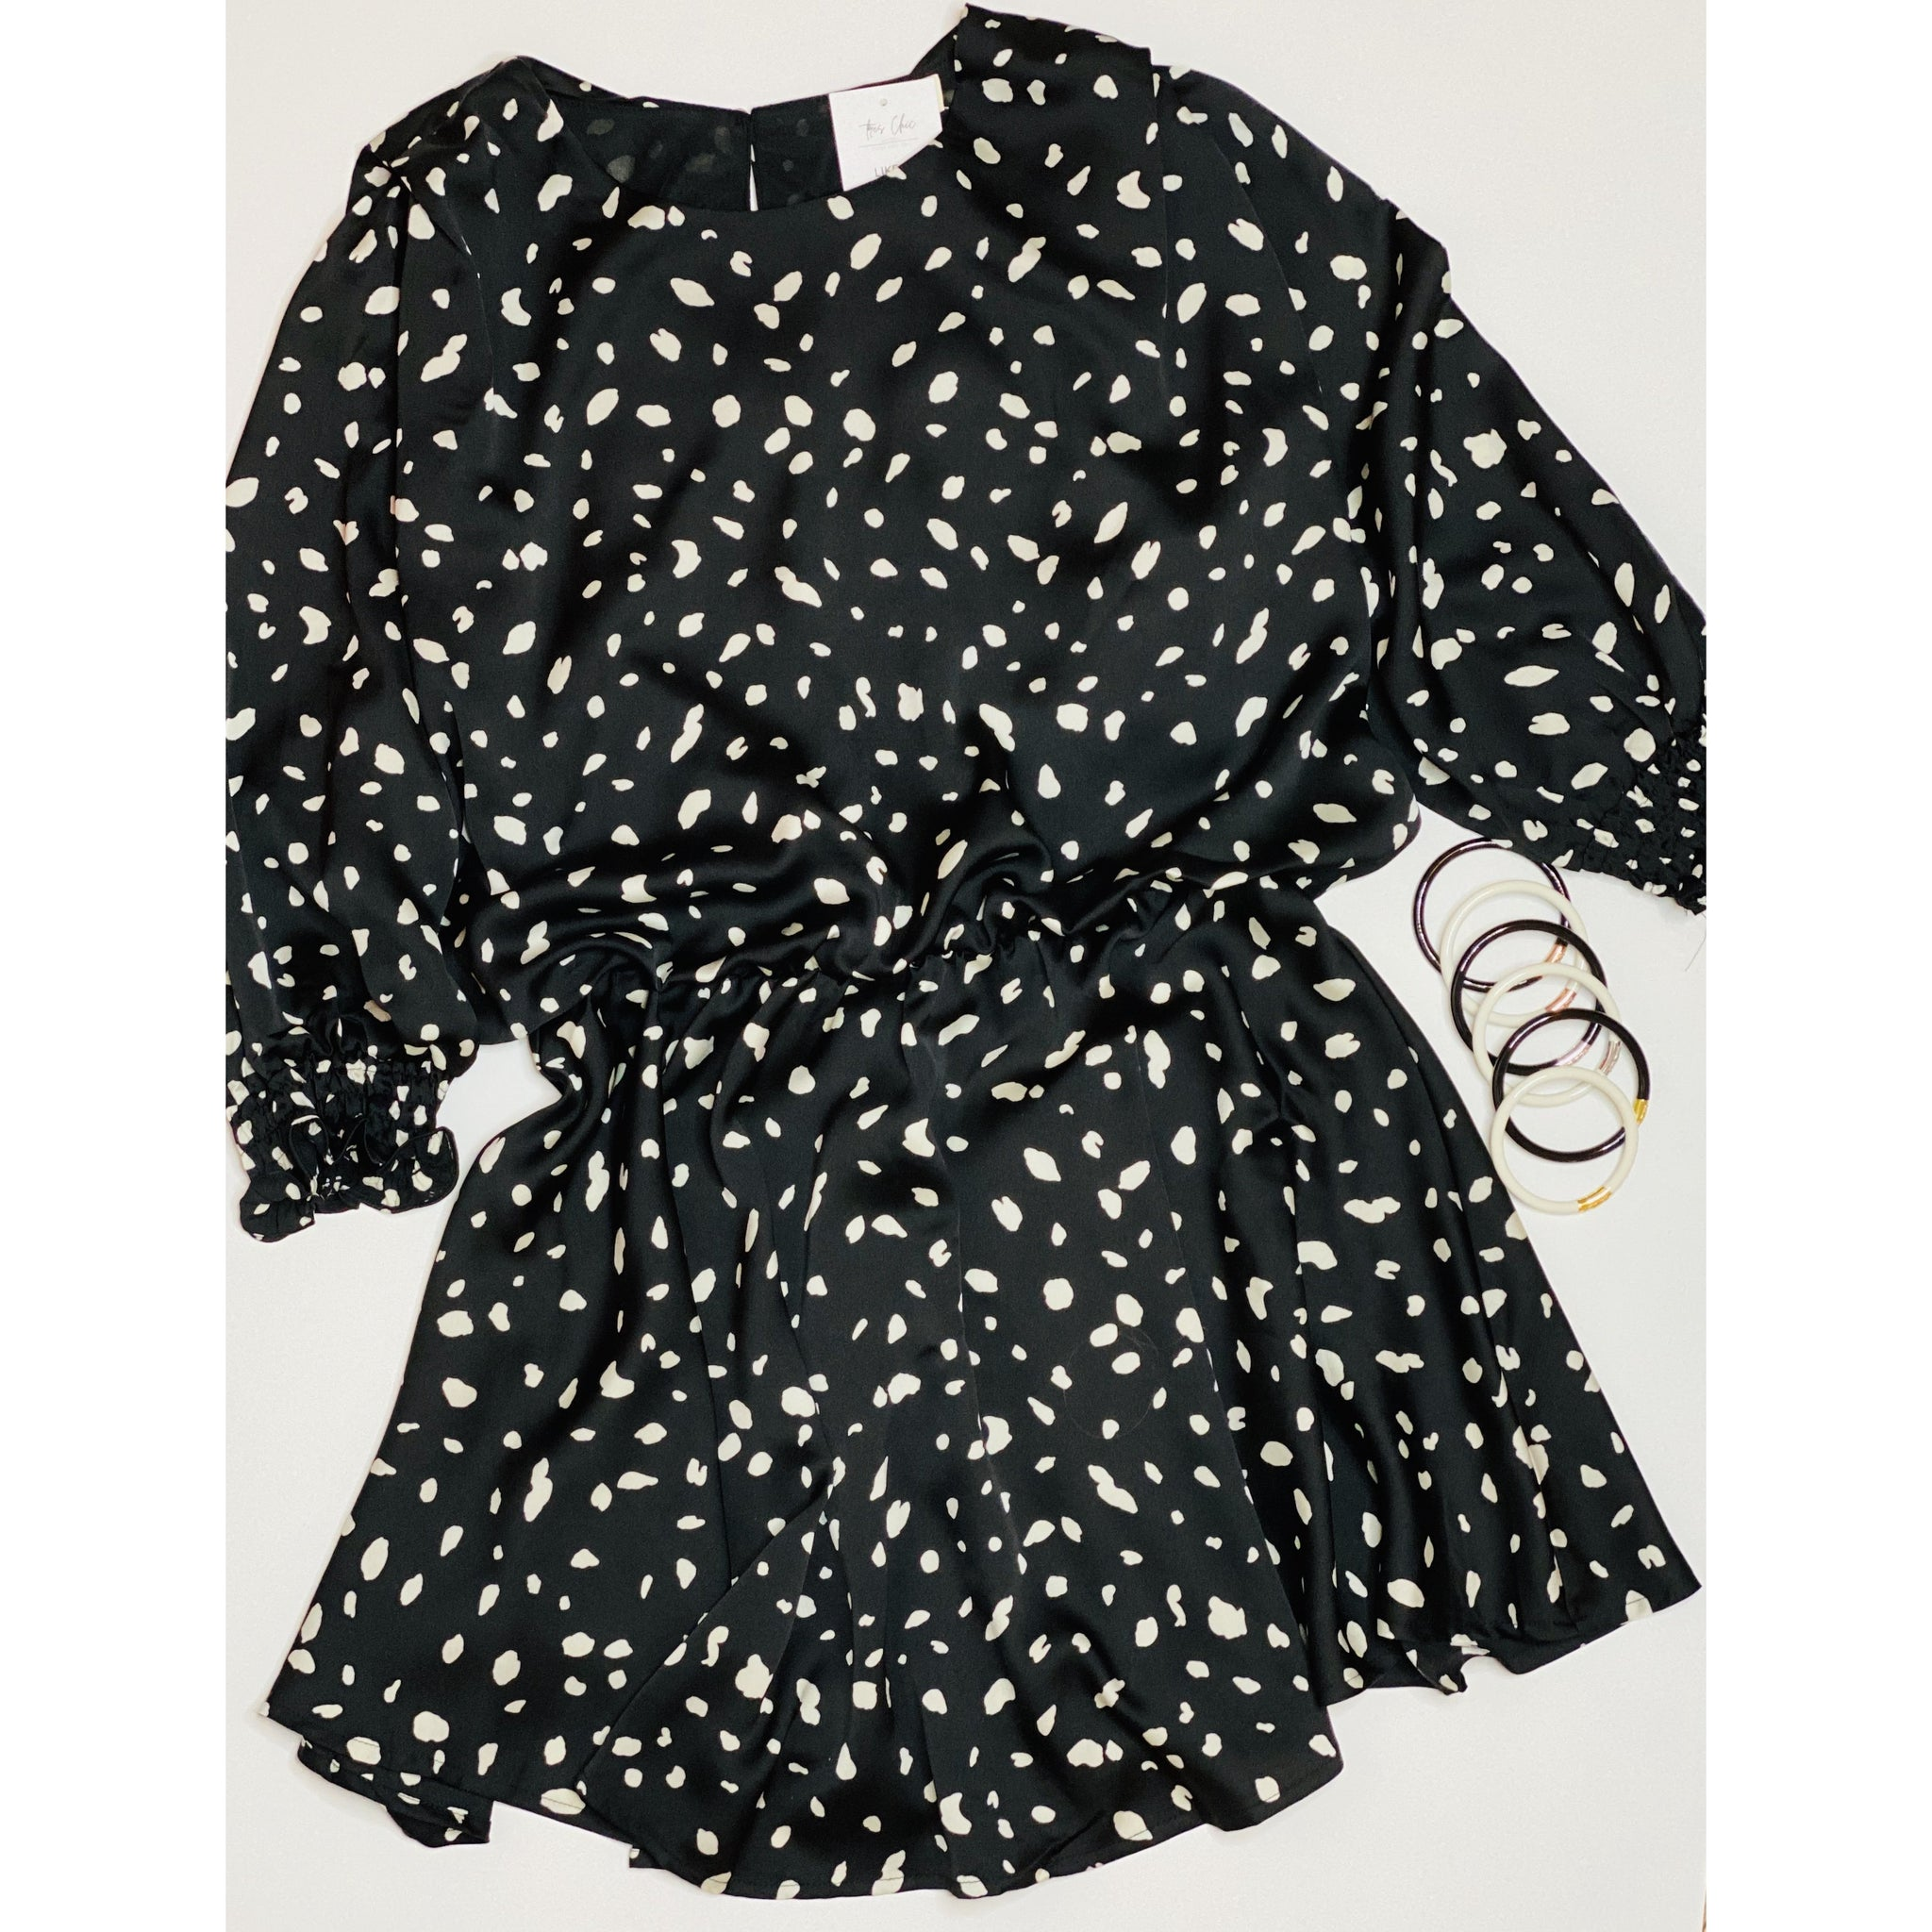 Chris Dot Dress - Tres Chic Boutique